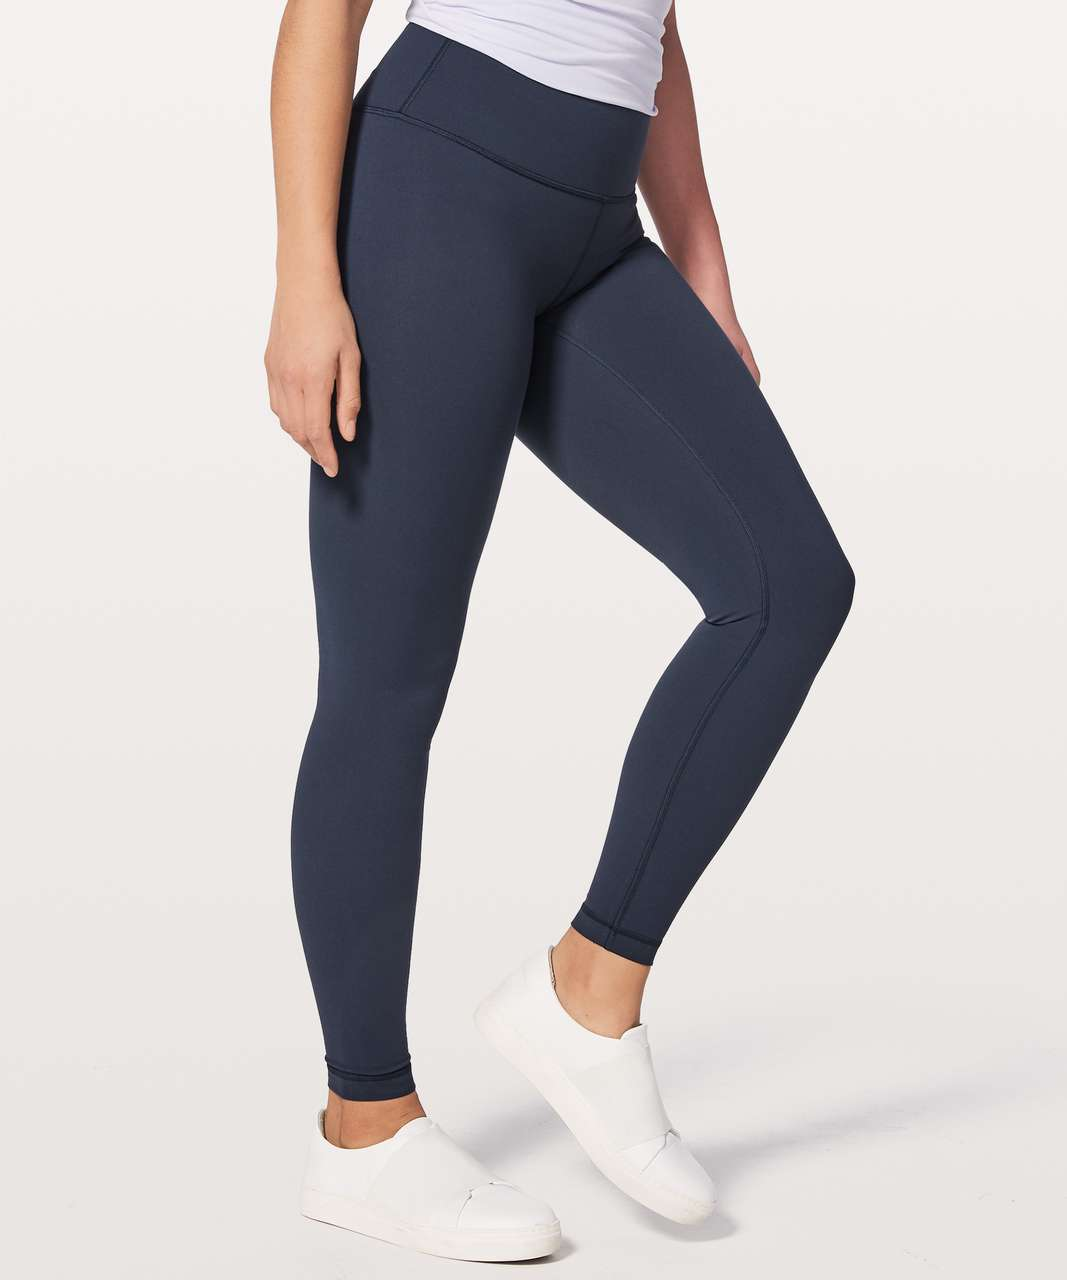 "Lululemon Wunder Under Hi-Rise Tight *28"" - Deep Navy"